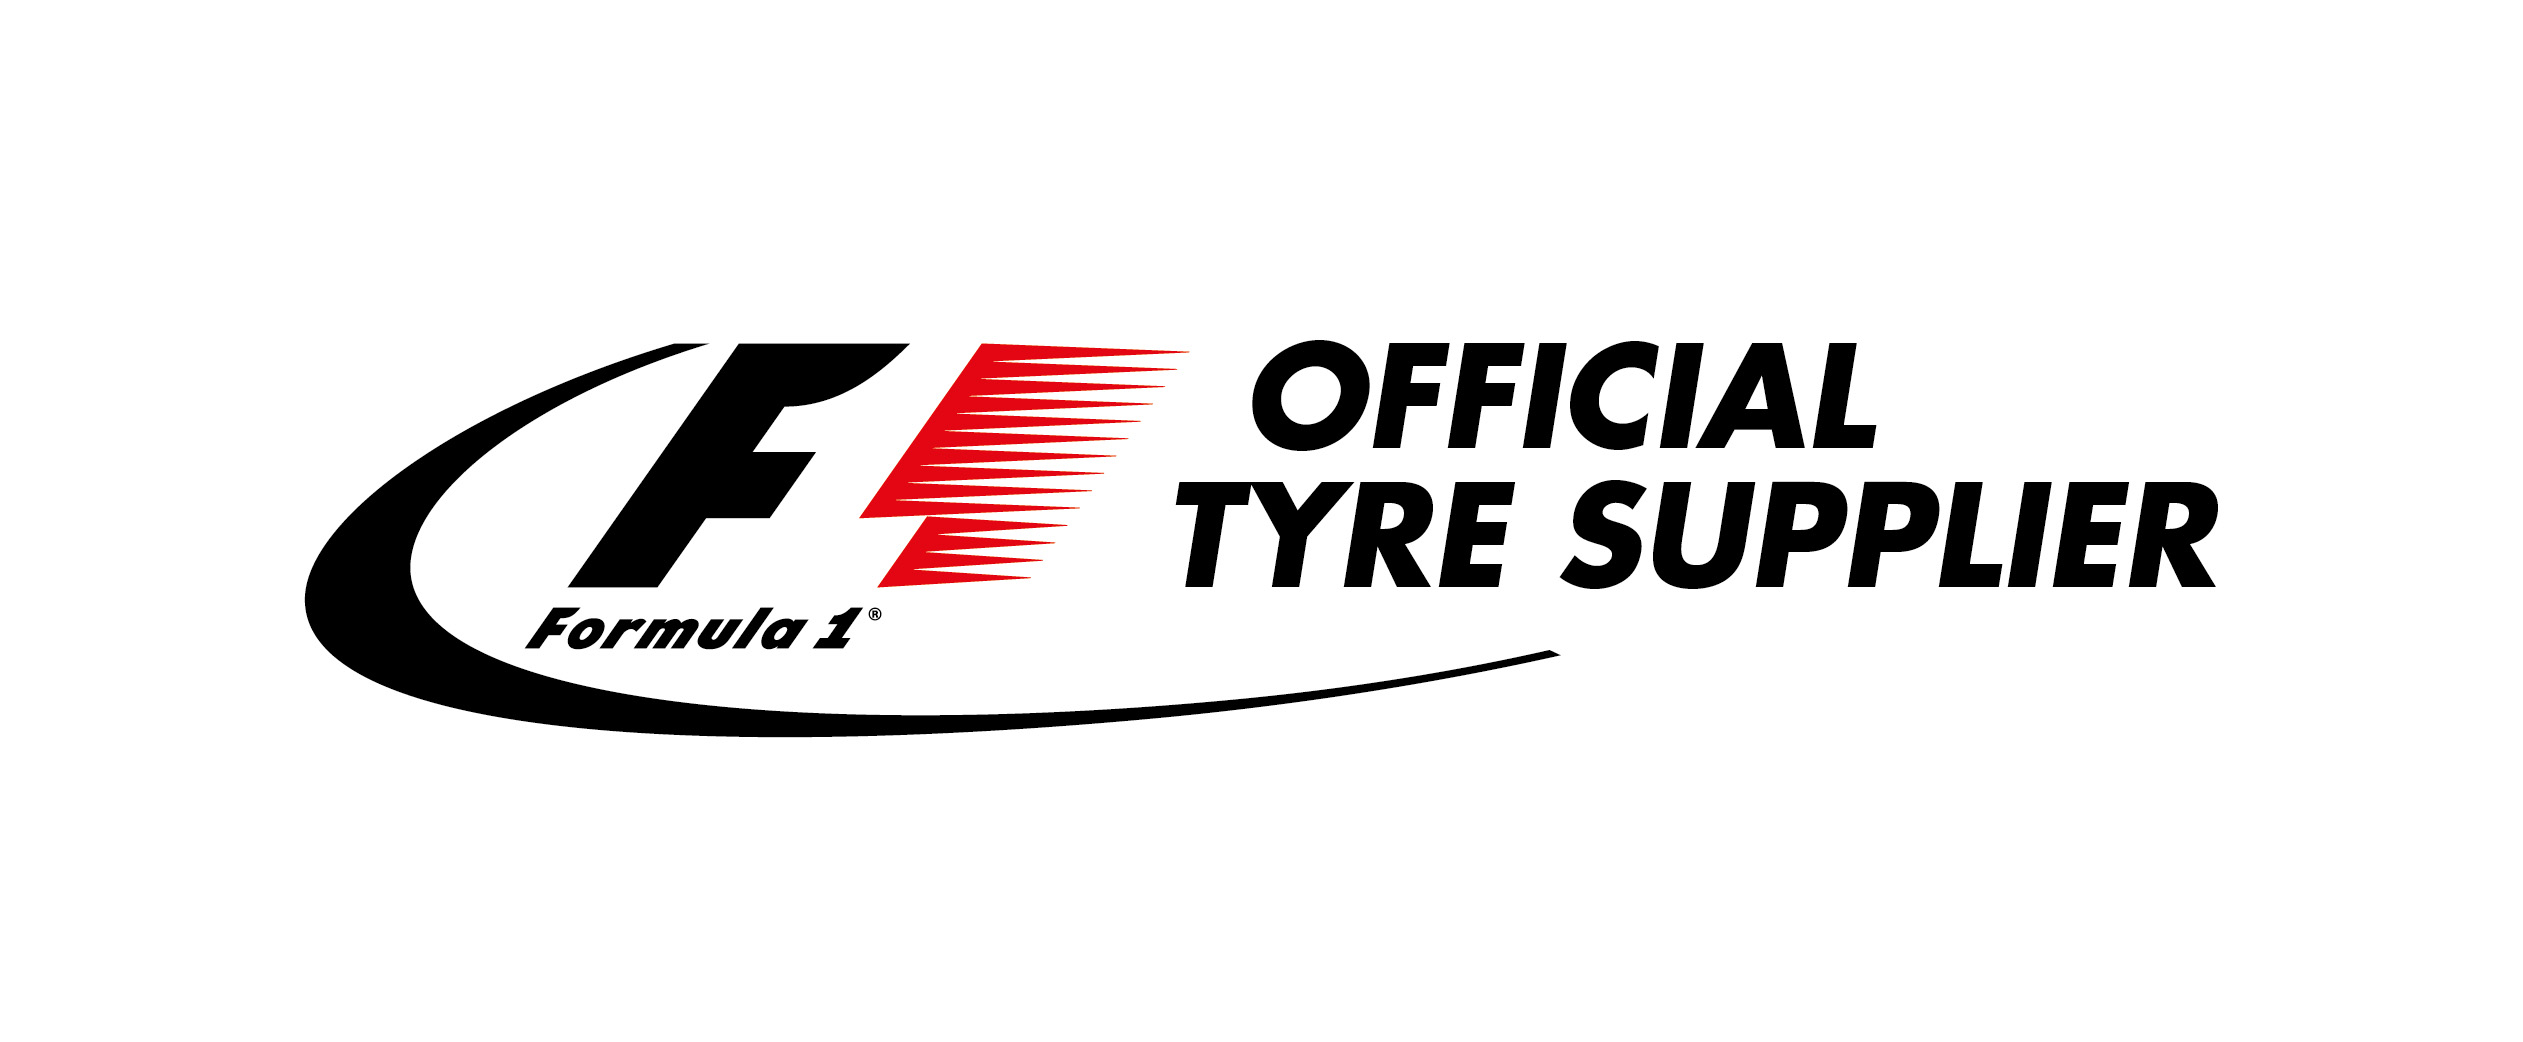 PIRELLI F1 - OFFICAL TYRE SUPPLIER